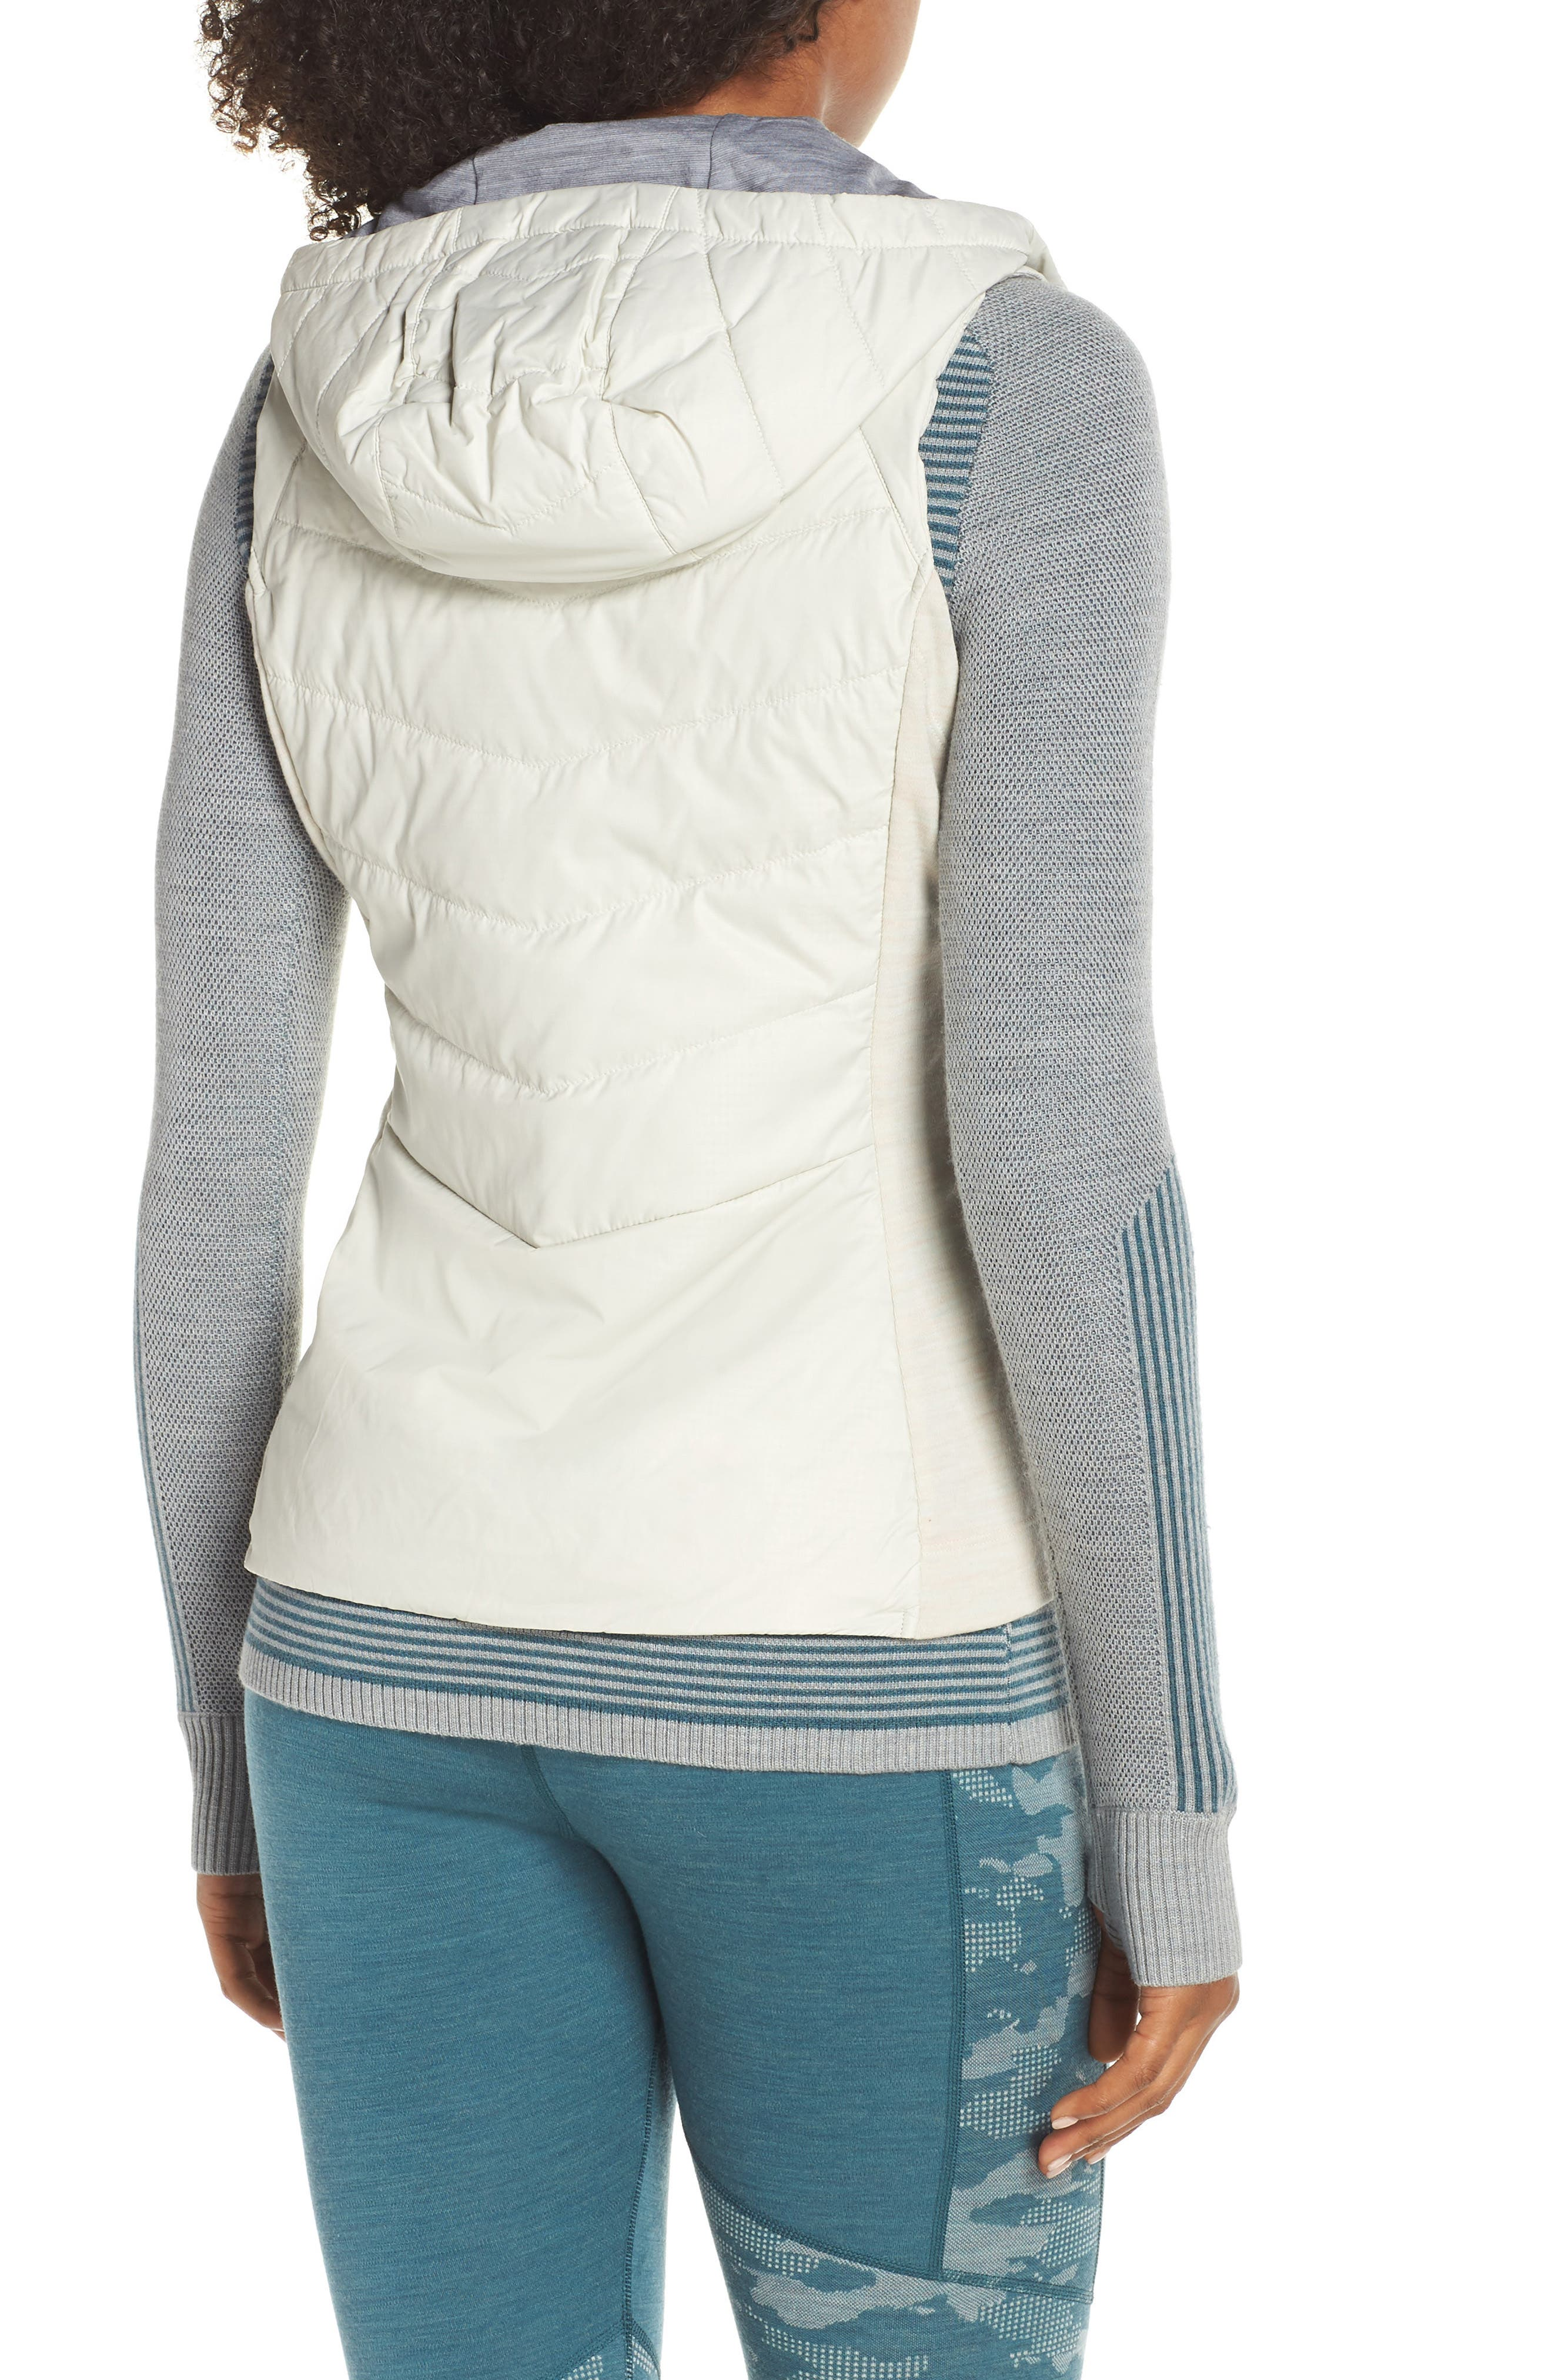 Smartloft 60 Insulated Hooded Vest,                             Alternate thumbnail 2, color,                             025